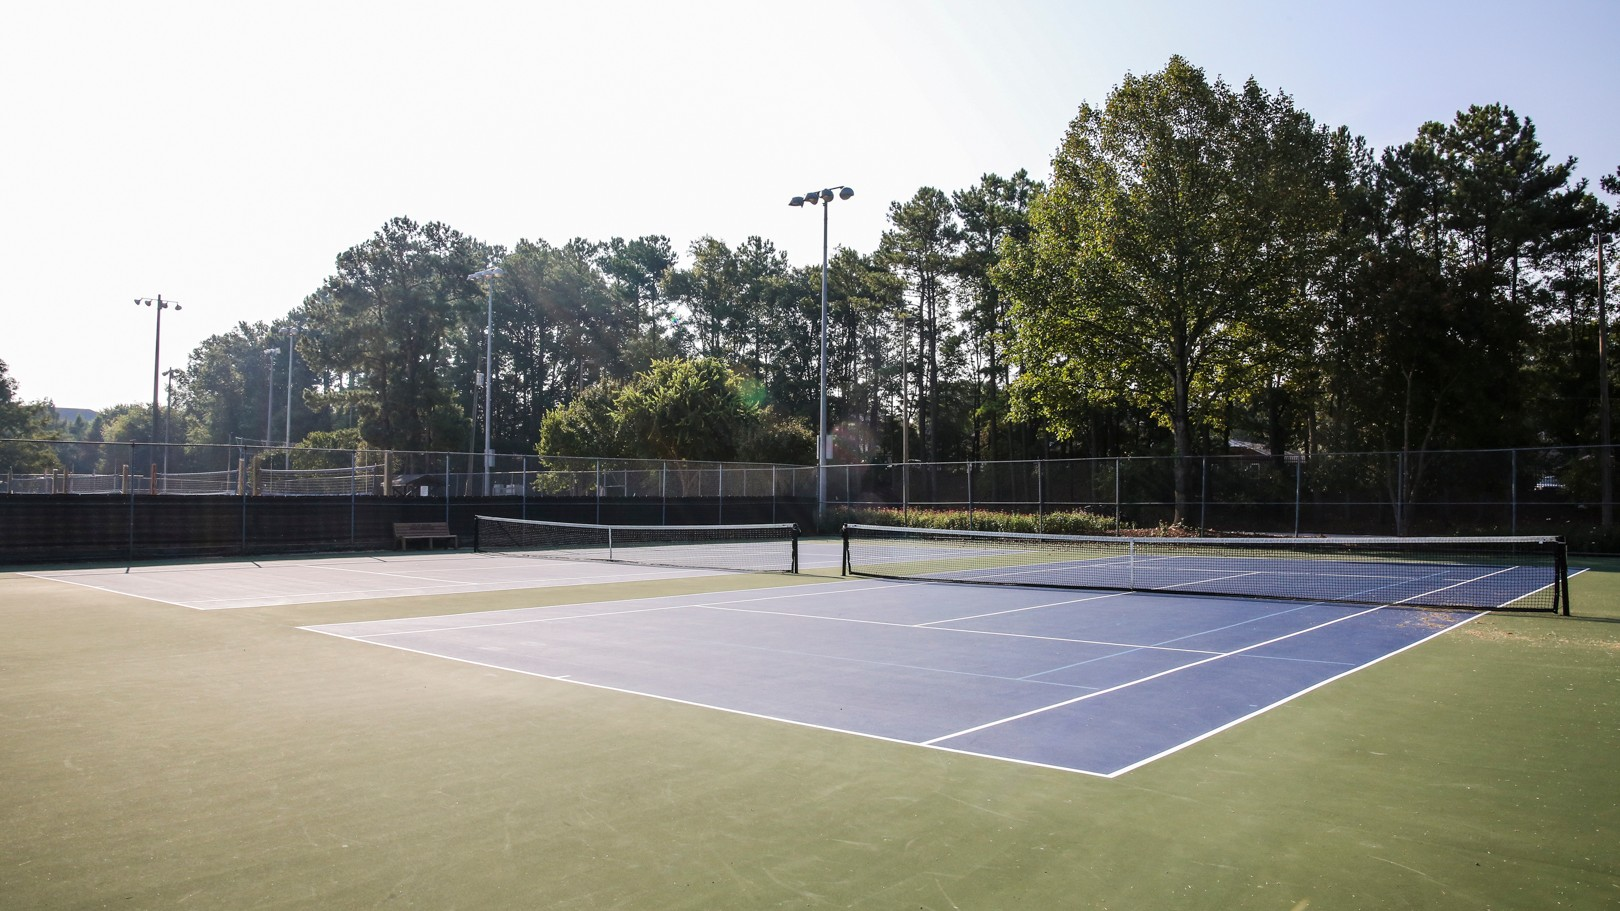 Two outdoor tennis courts with nets